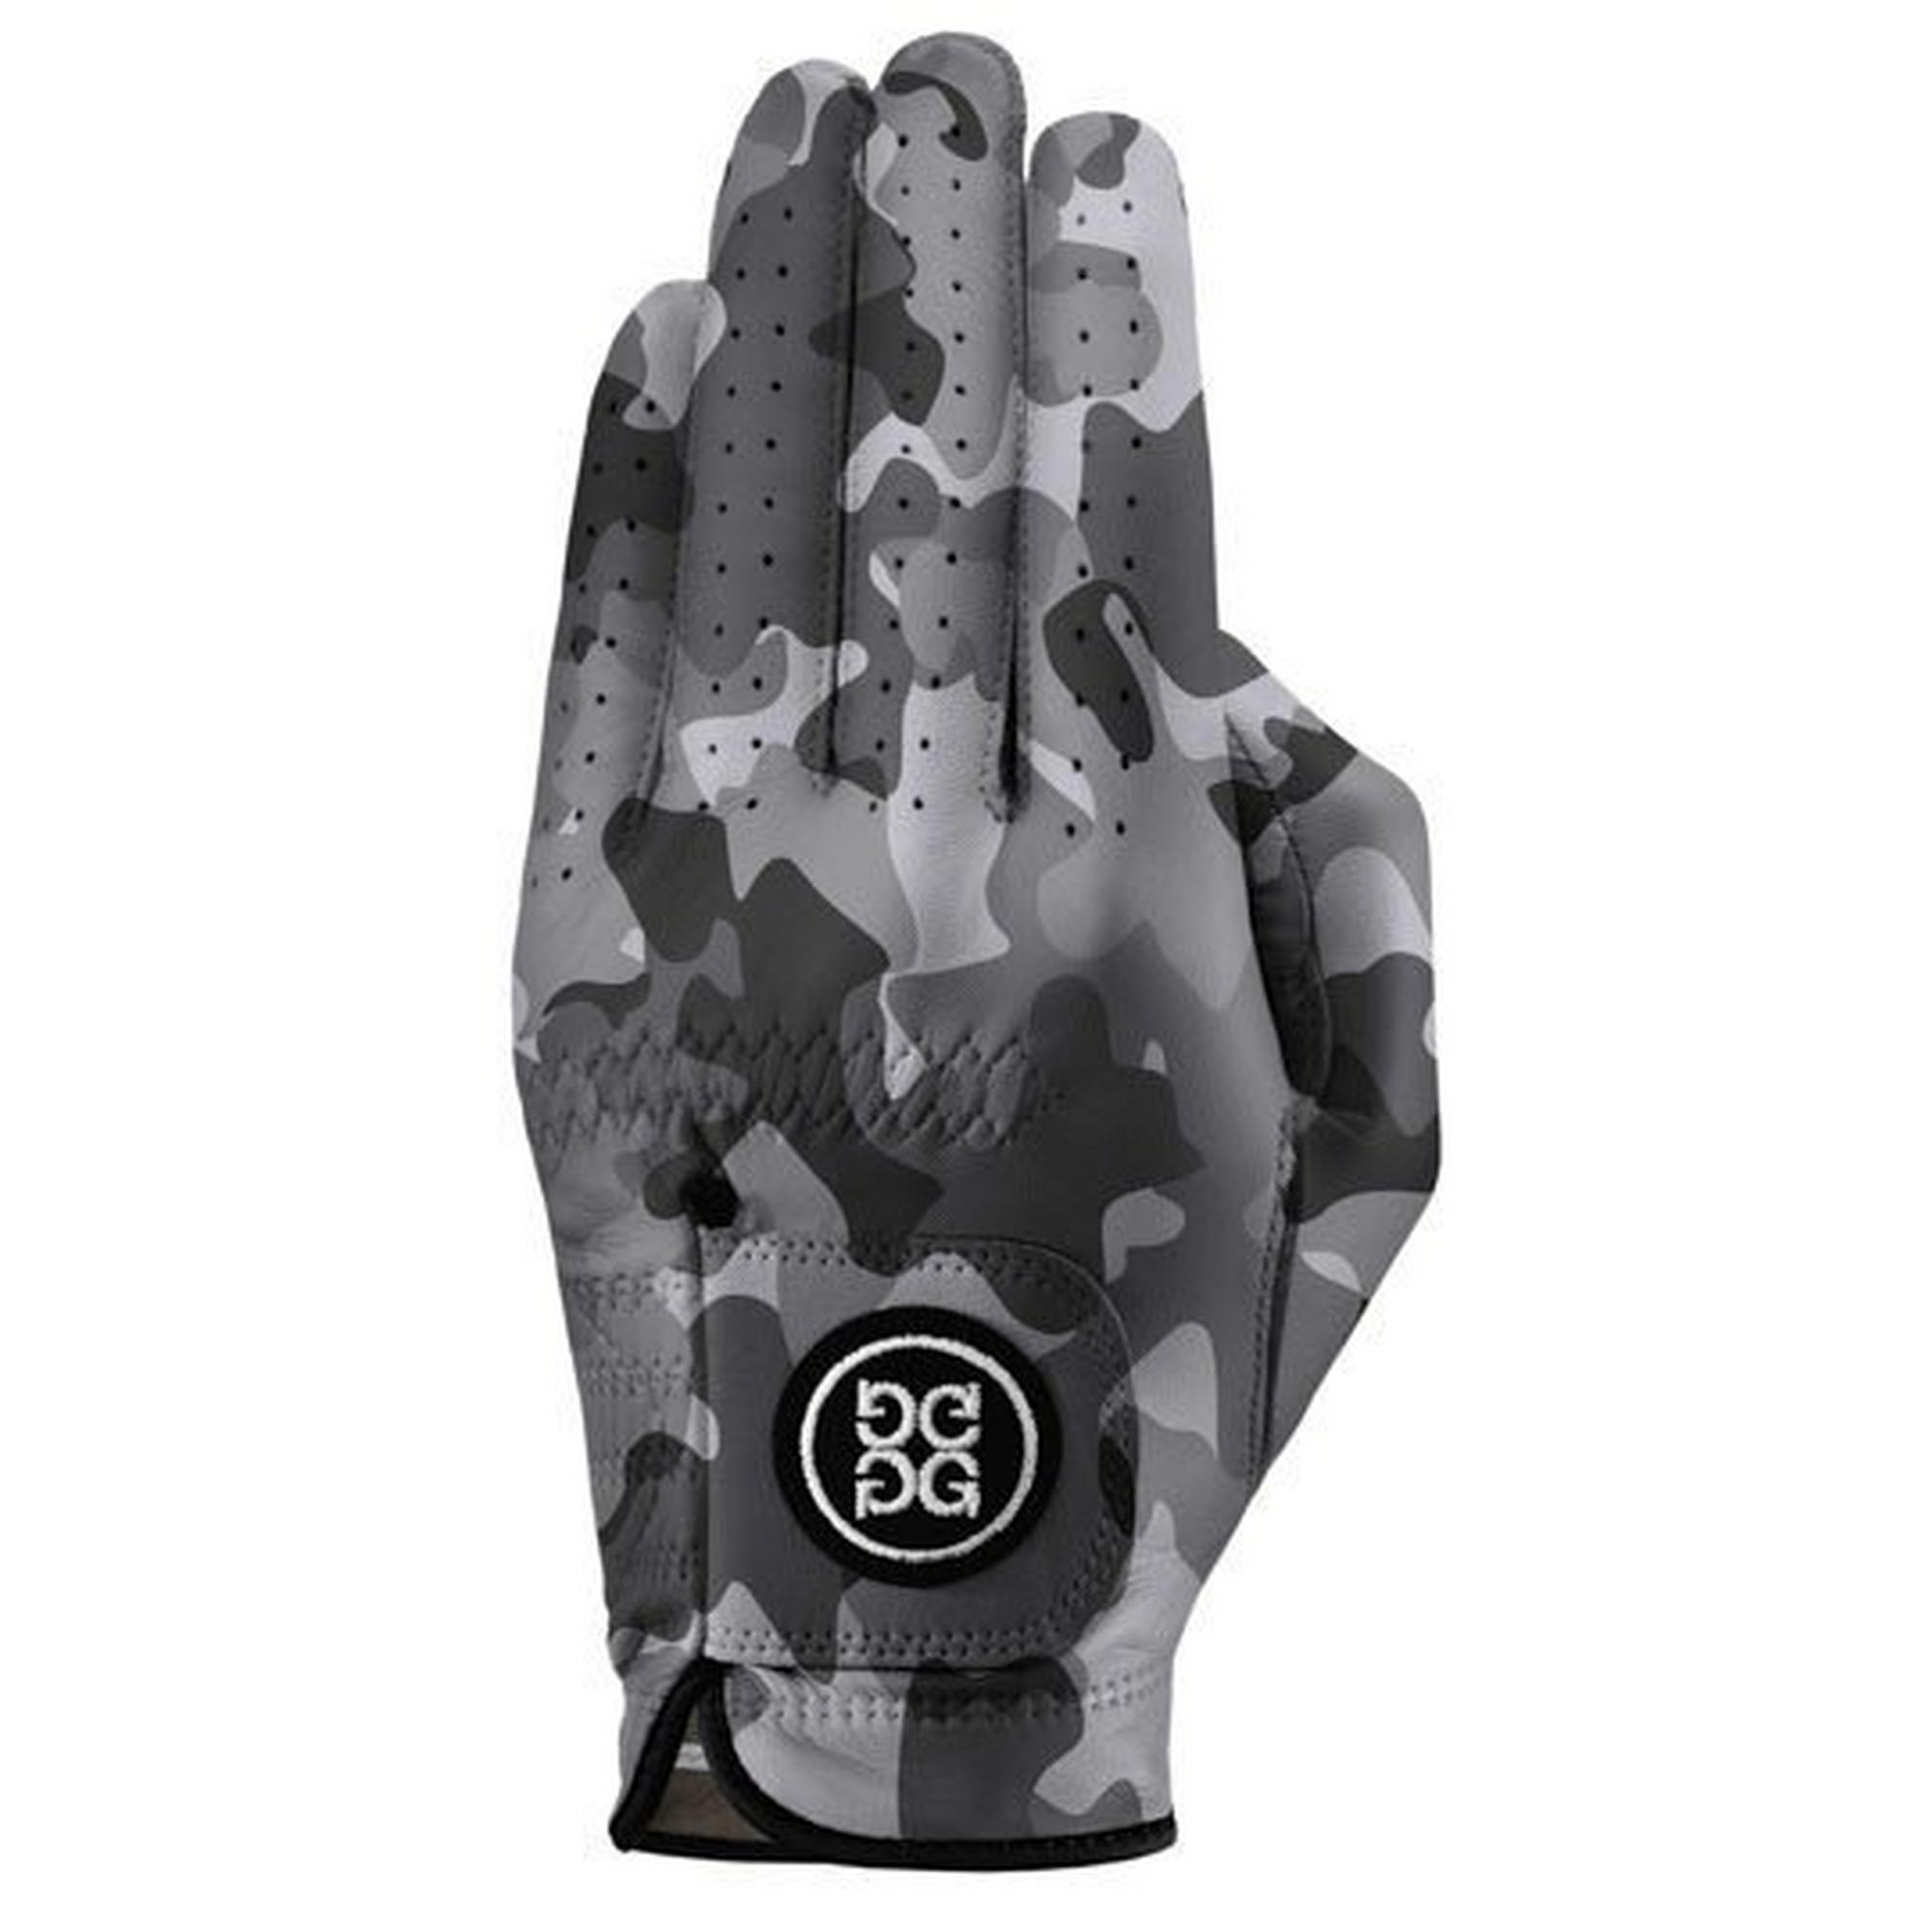 Special Edition Delta Force Golf Glove - LH